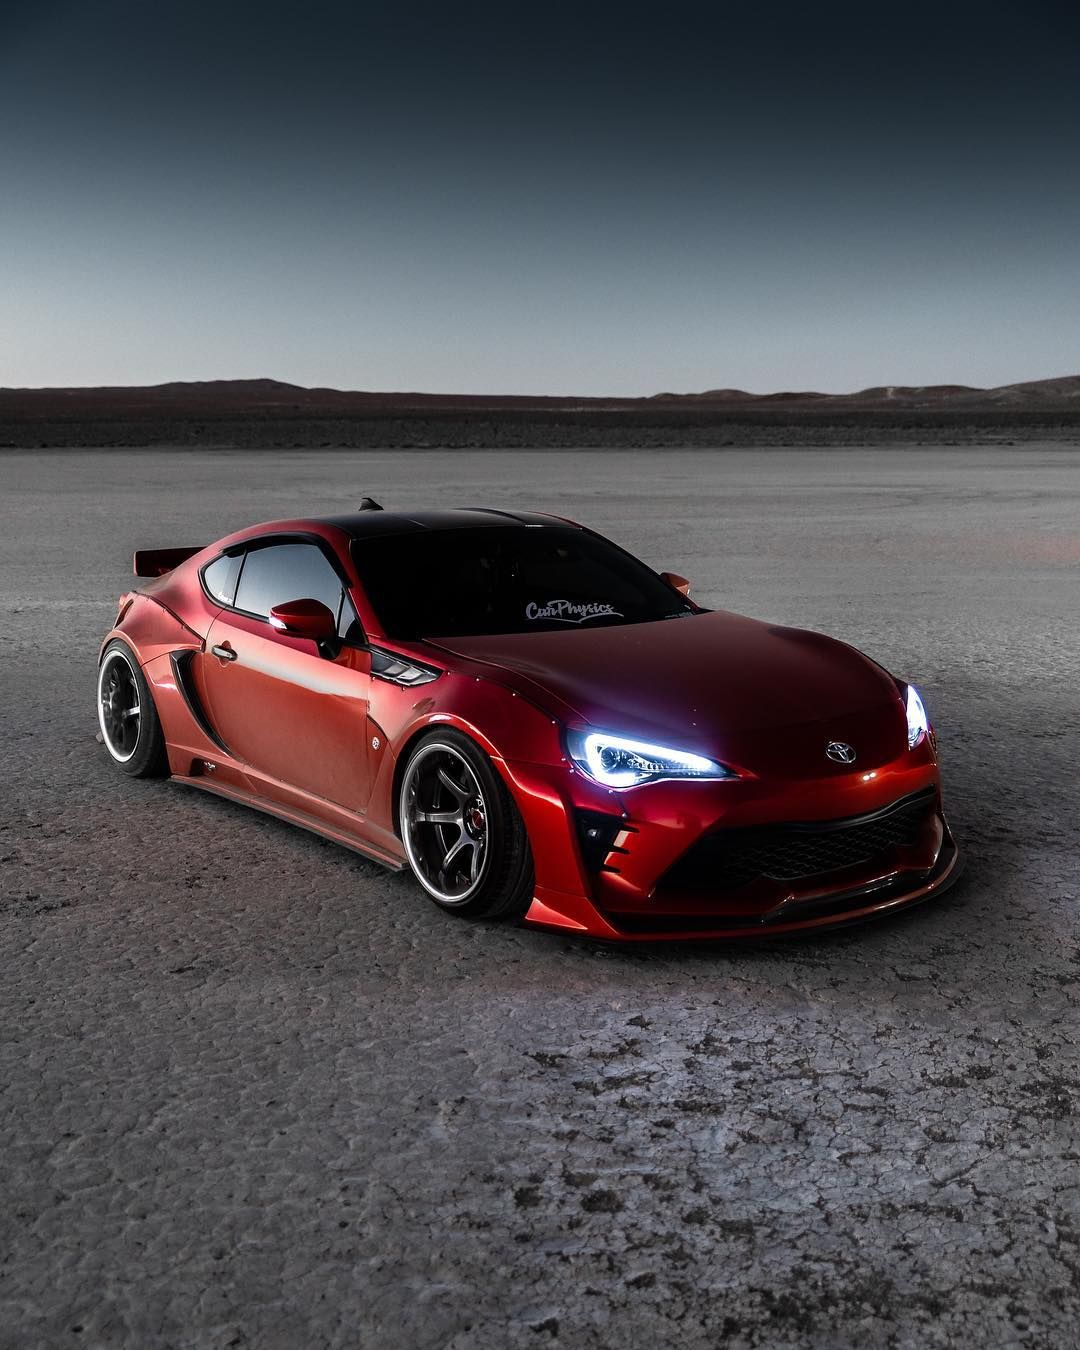 toyota 86 (With images) | Subaru cars, Toyota gt86, Japan cars